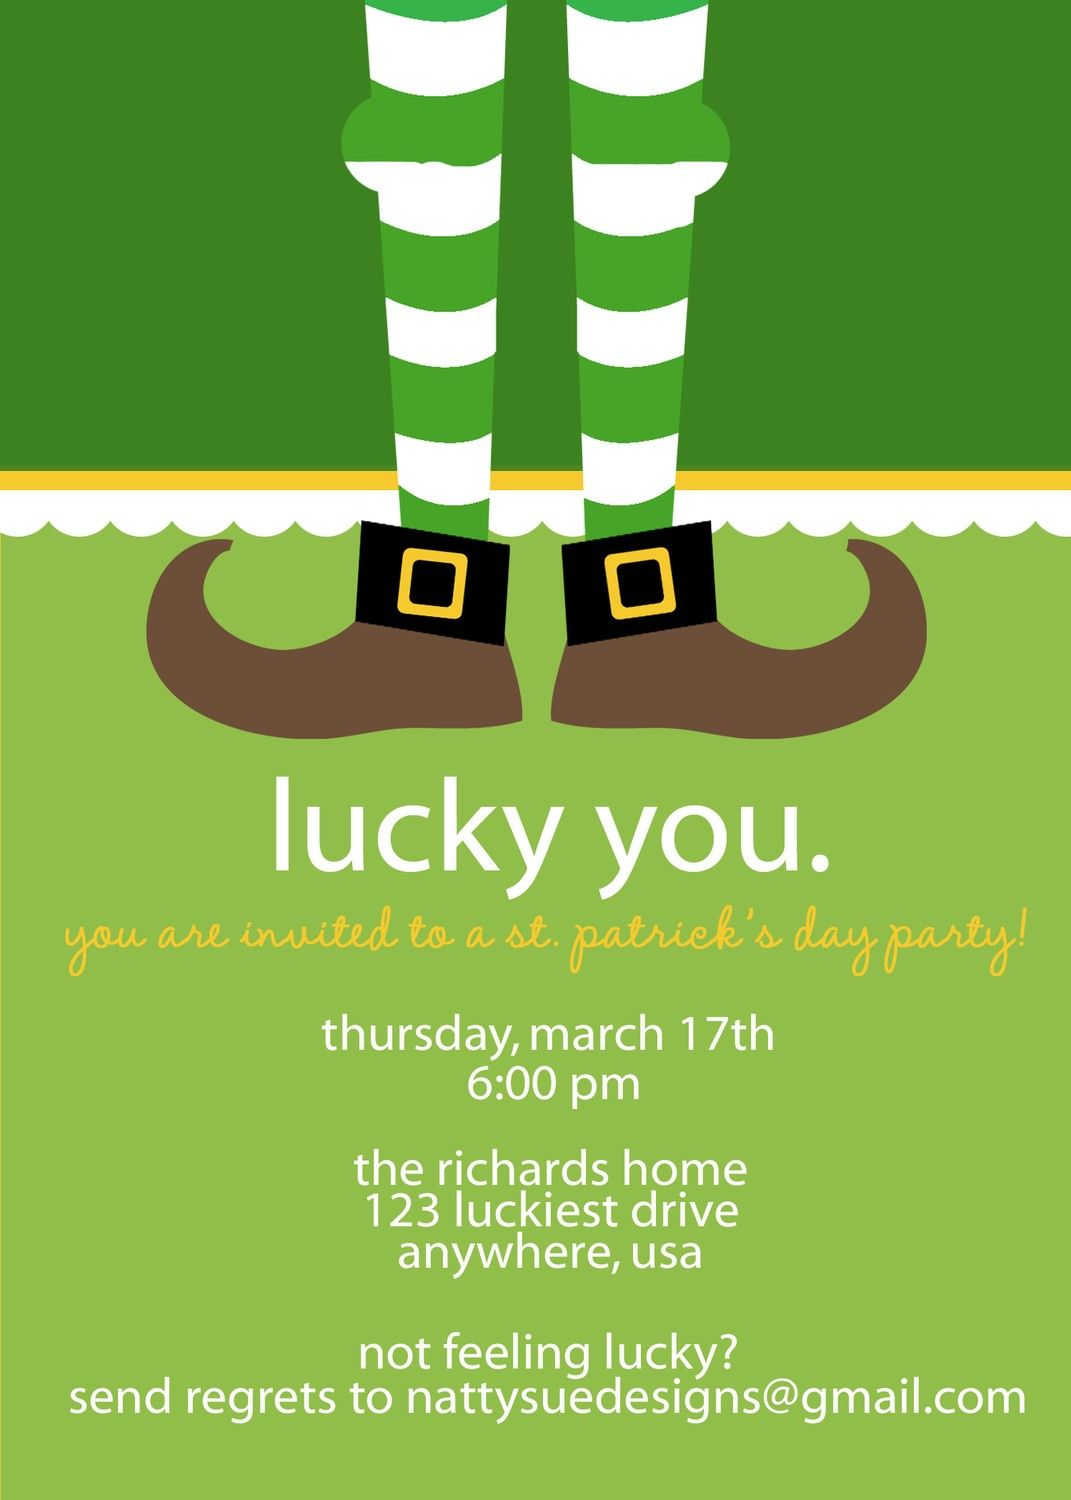 Lucky St Patrick\'s Day Party Invitation by nattysuedesigns1 ...